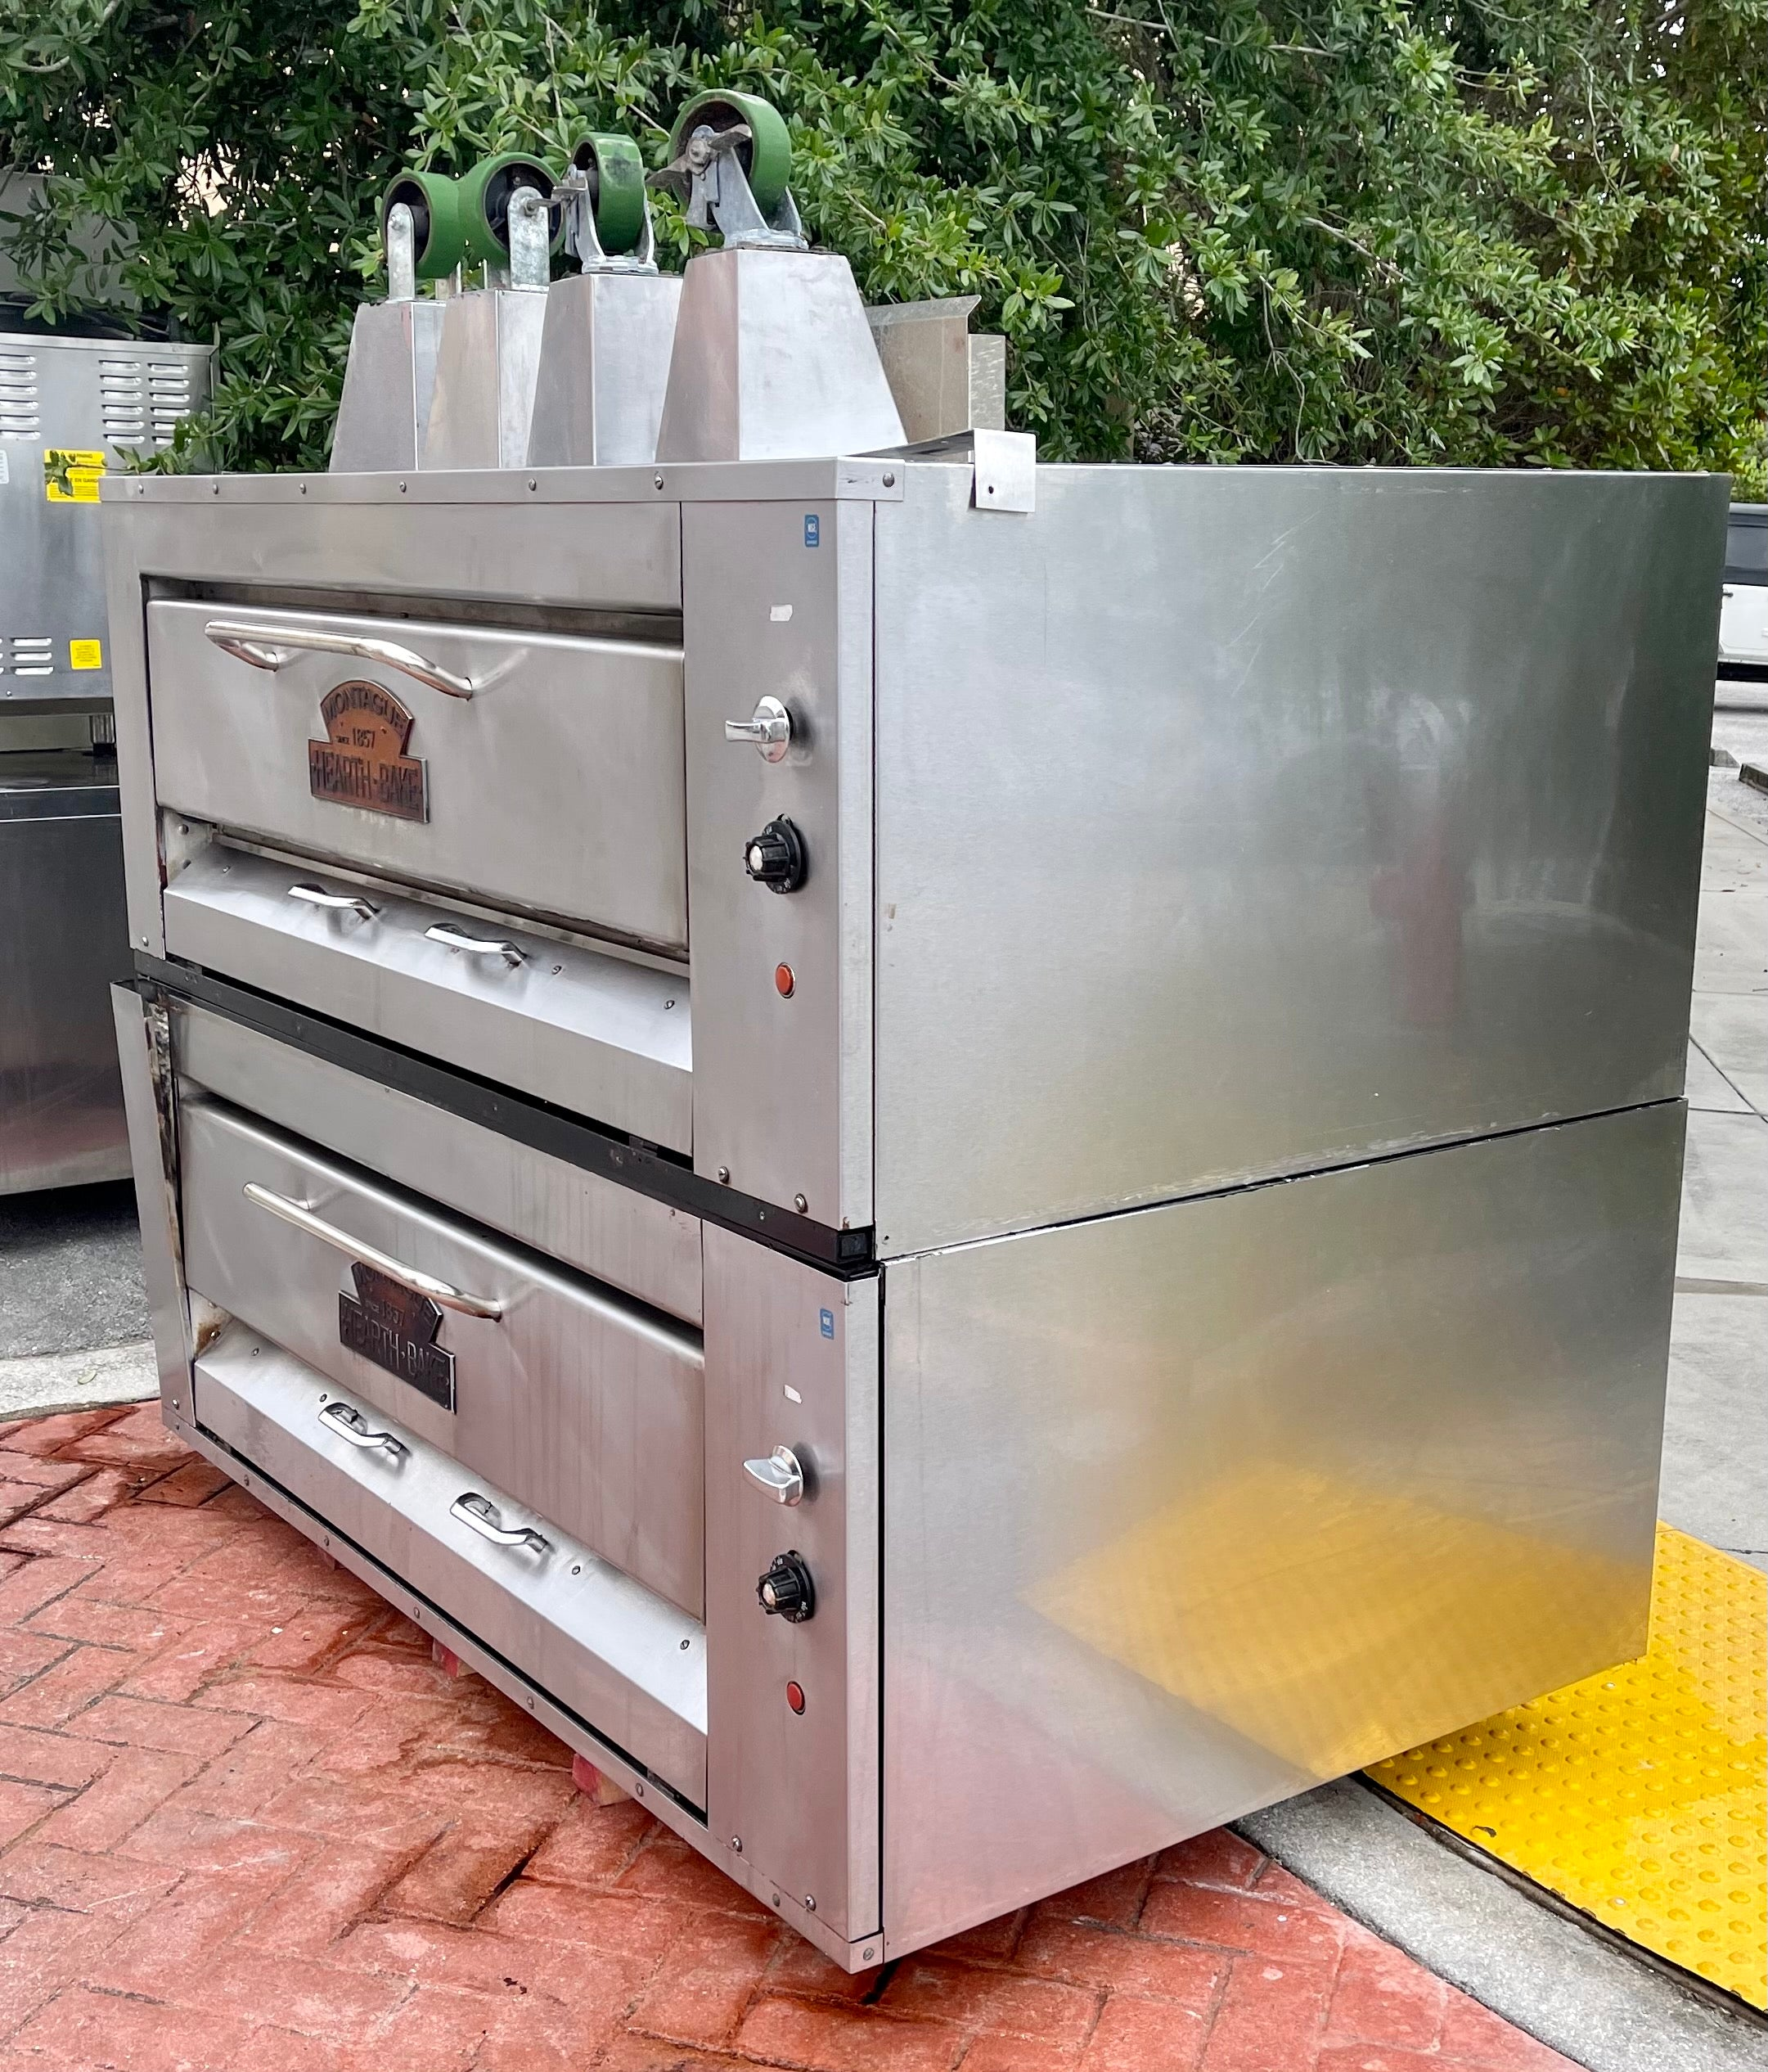 Montague 24P-2 4 pie Doublestack pizza oven